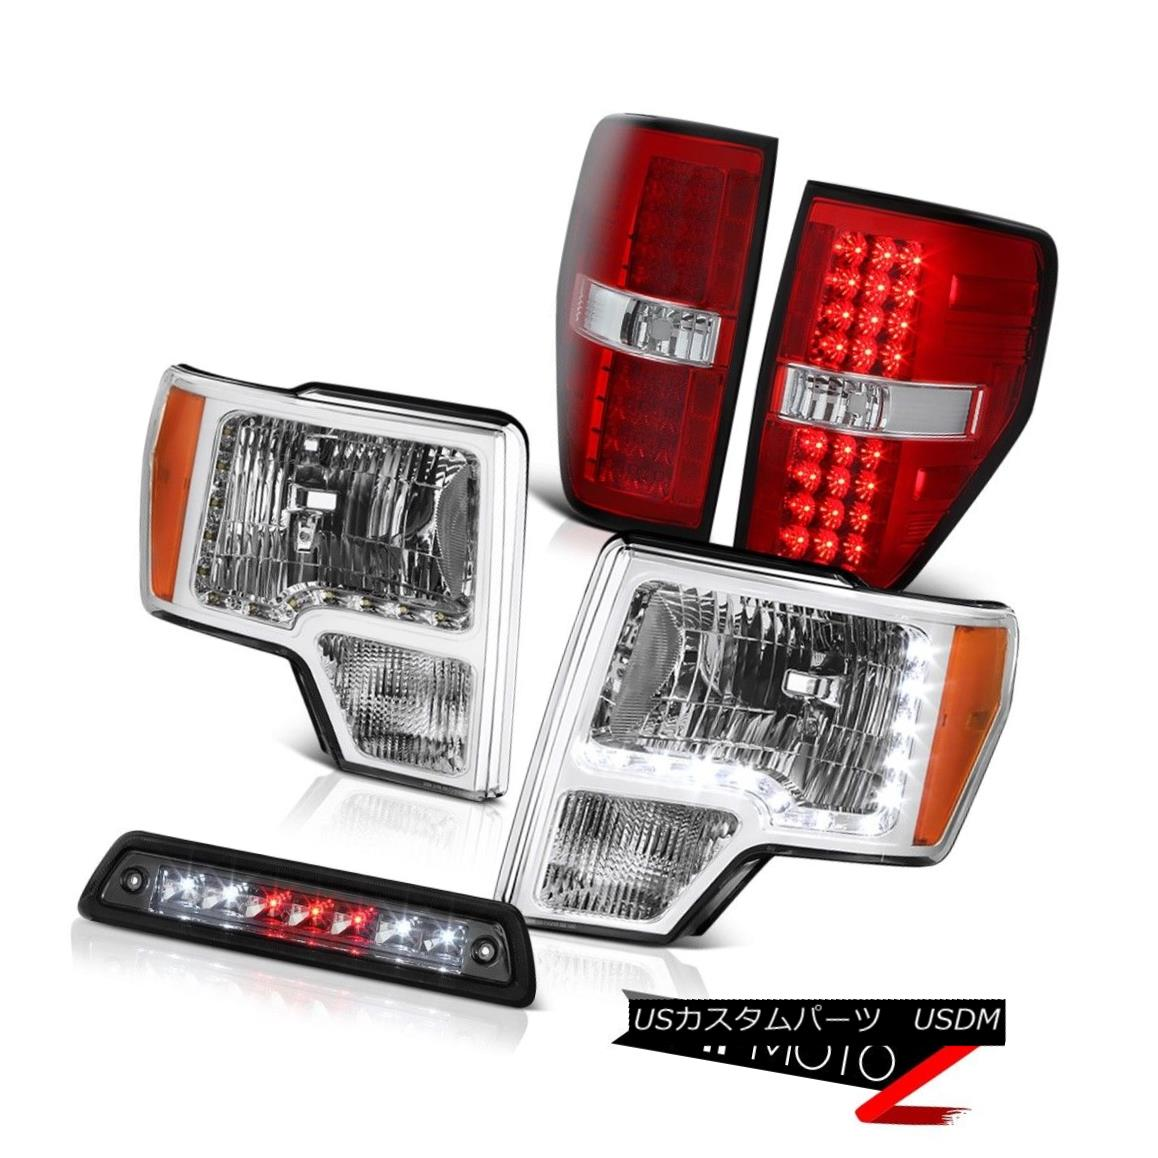 テールライト 09-14 F150 LARIAT Roof brake light red clear tail lamps headlights led drl LED 09-14 F150 LARIATルーフブレーキライト赤クリアテールランプヘッドライトled drl LED